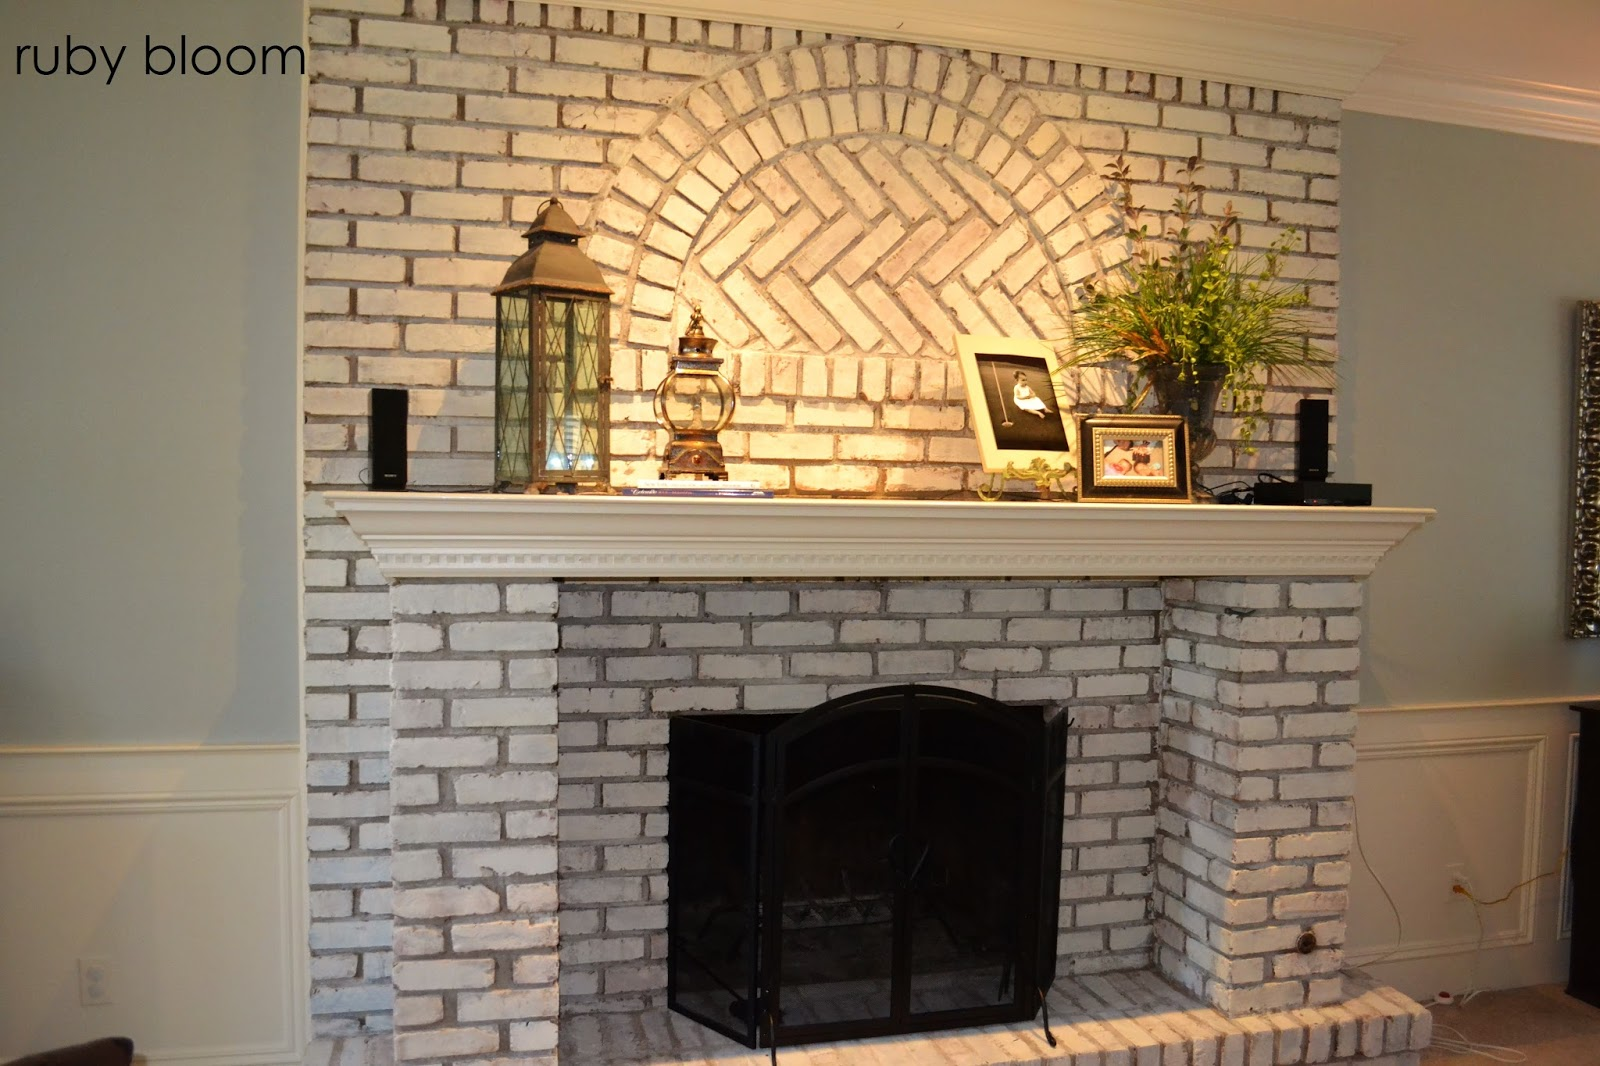 Brick Fireplace Part - 34: Monday, July 22, 2013